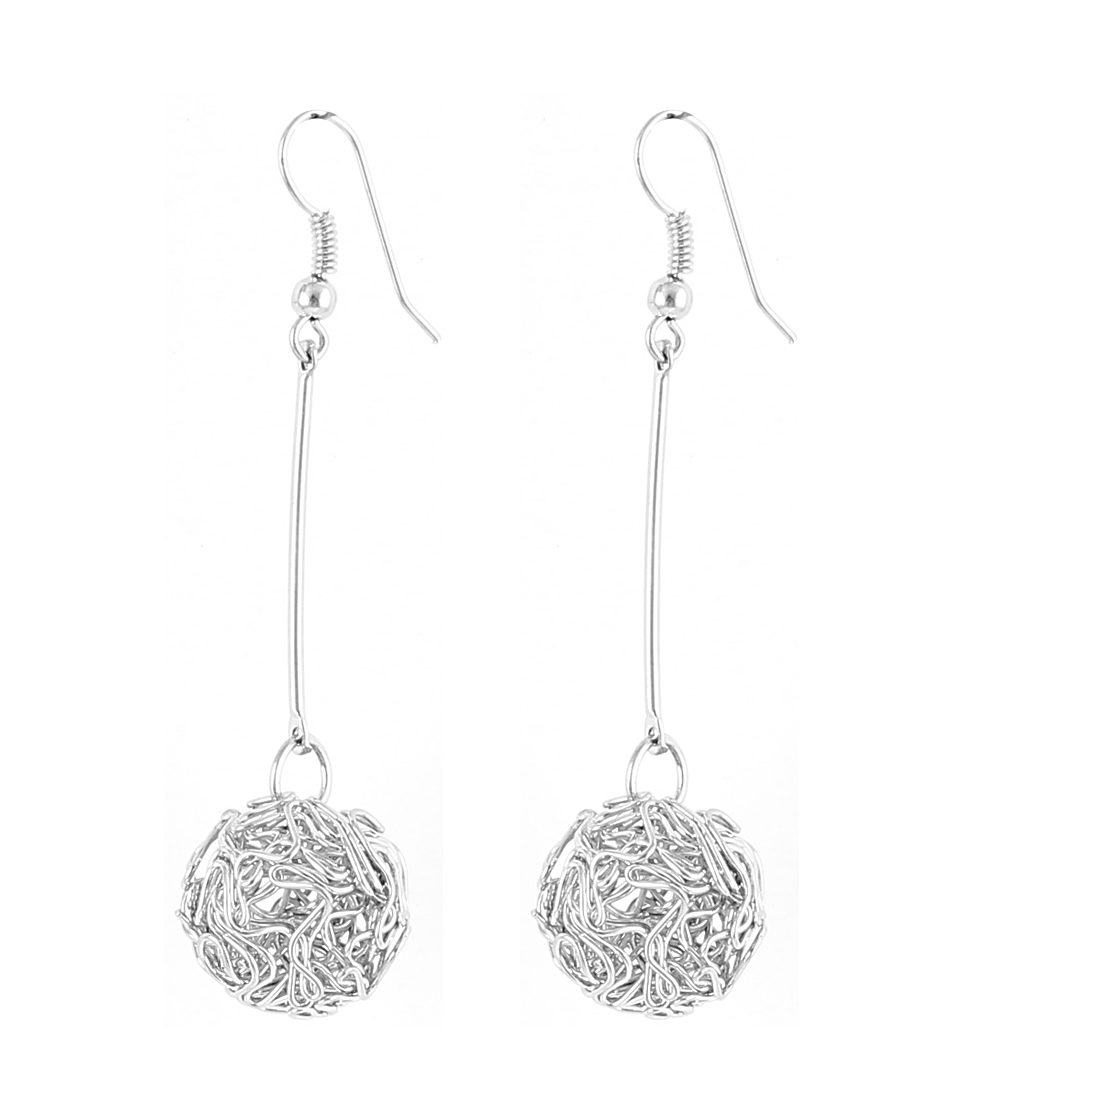 Lady Round Knot Dangle Drop Fish Hook Earrings Eardrop Earbob Silver Tone Pair